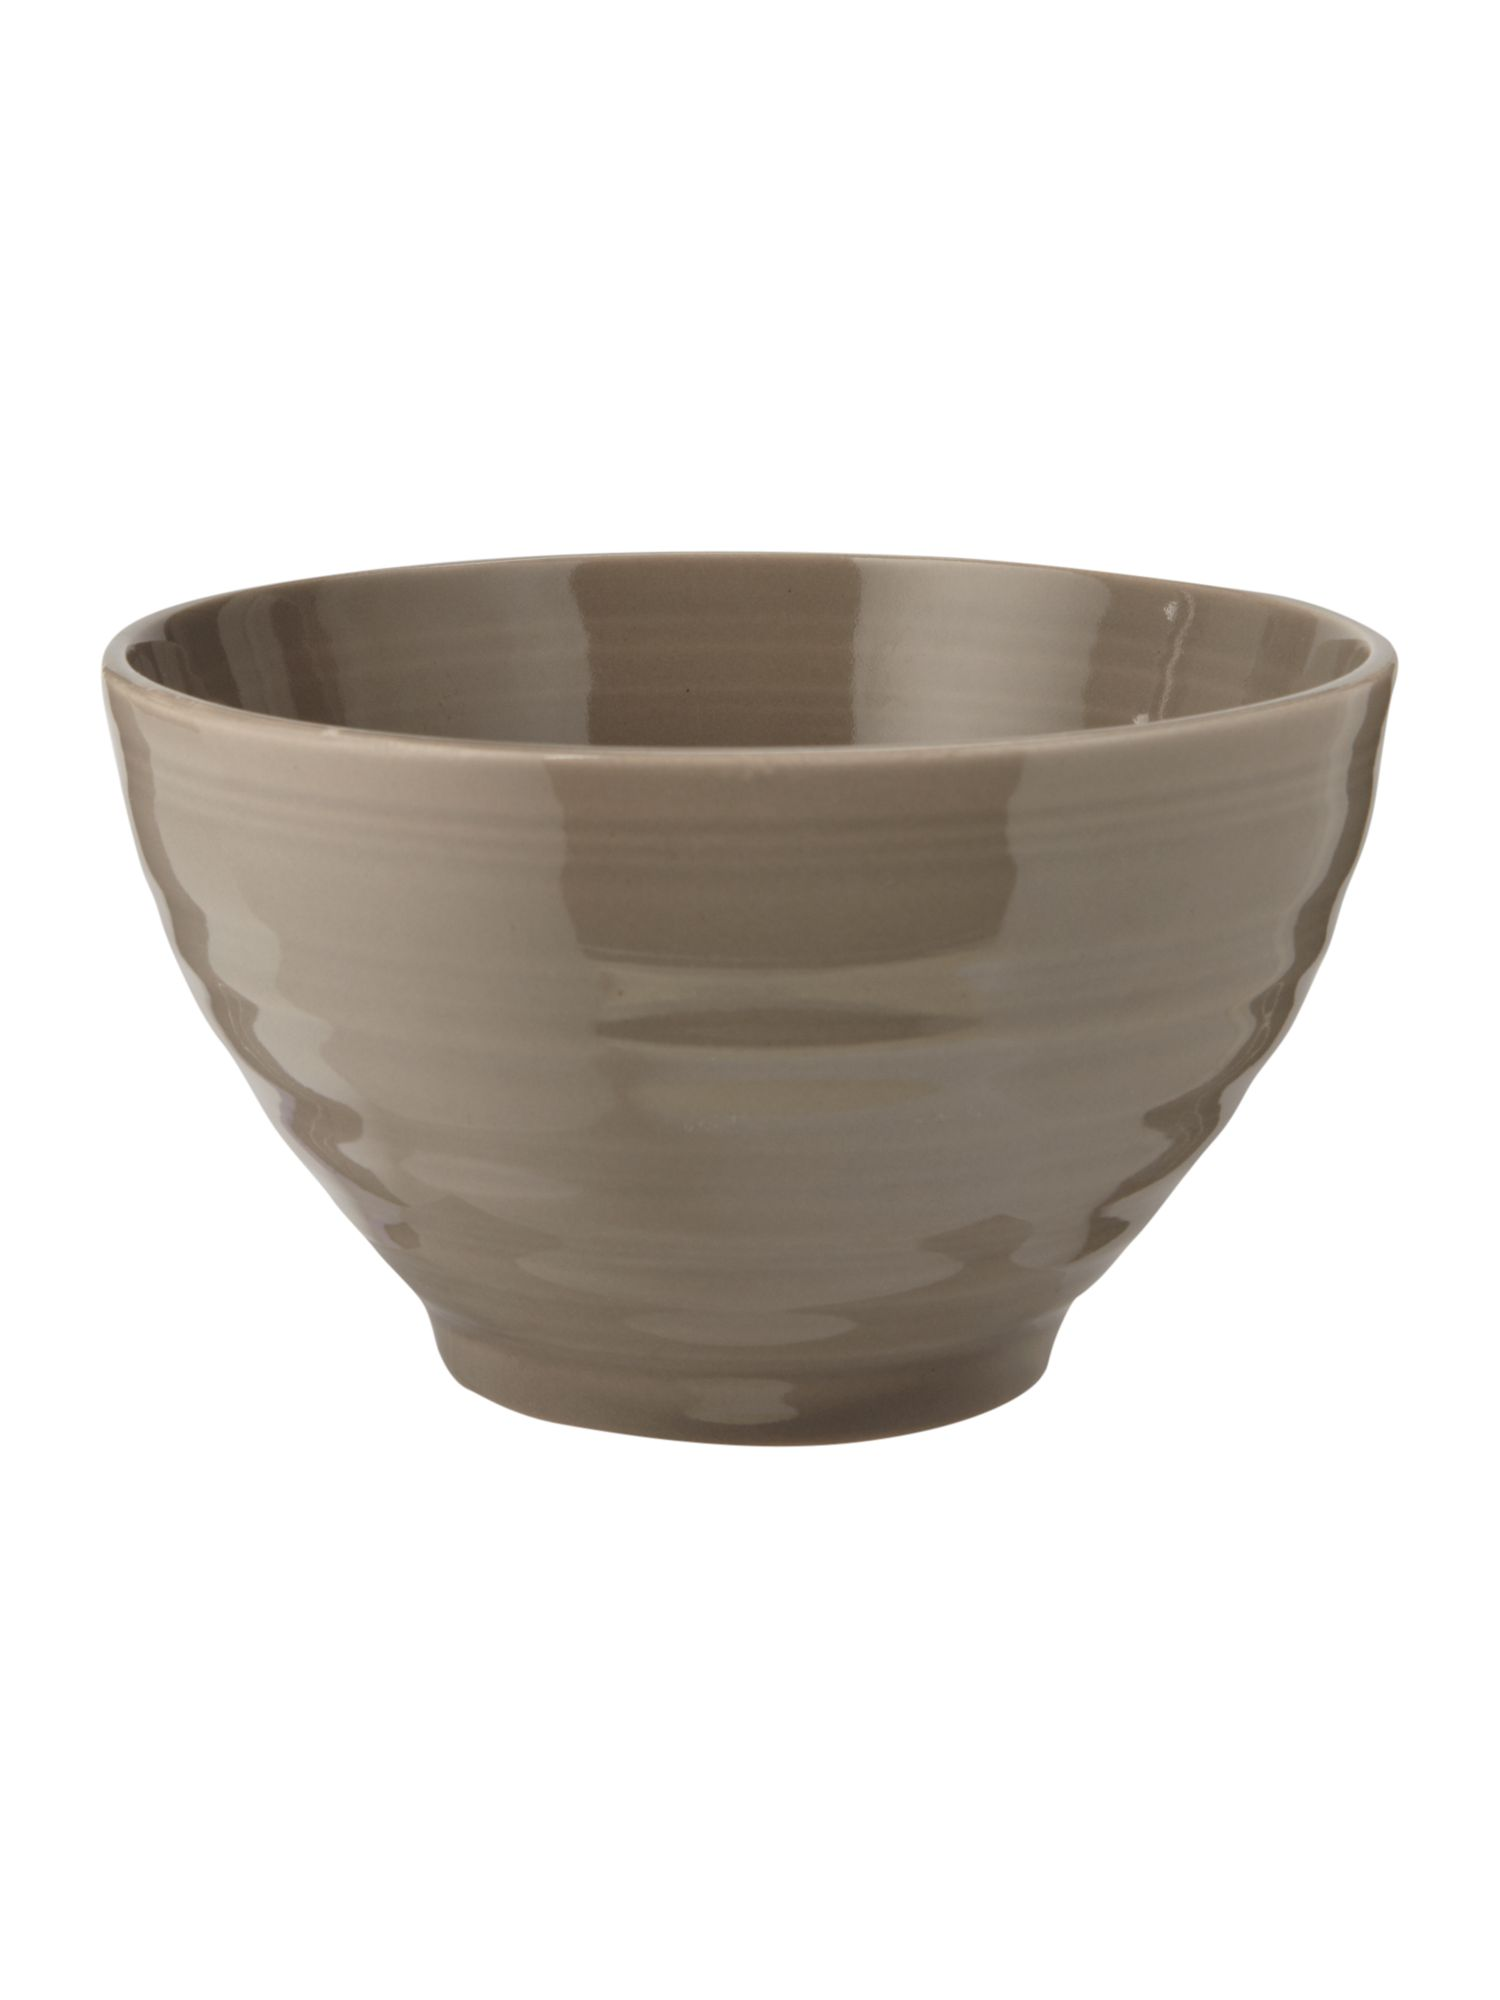 Echo beige cereal bowl